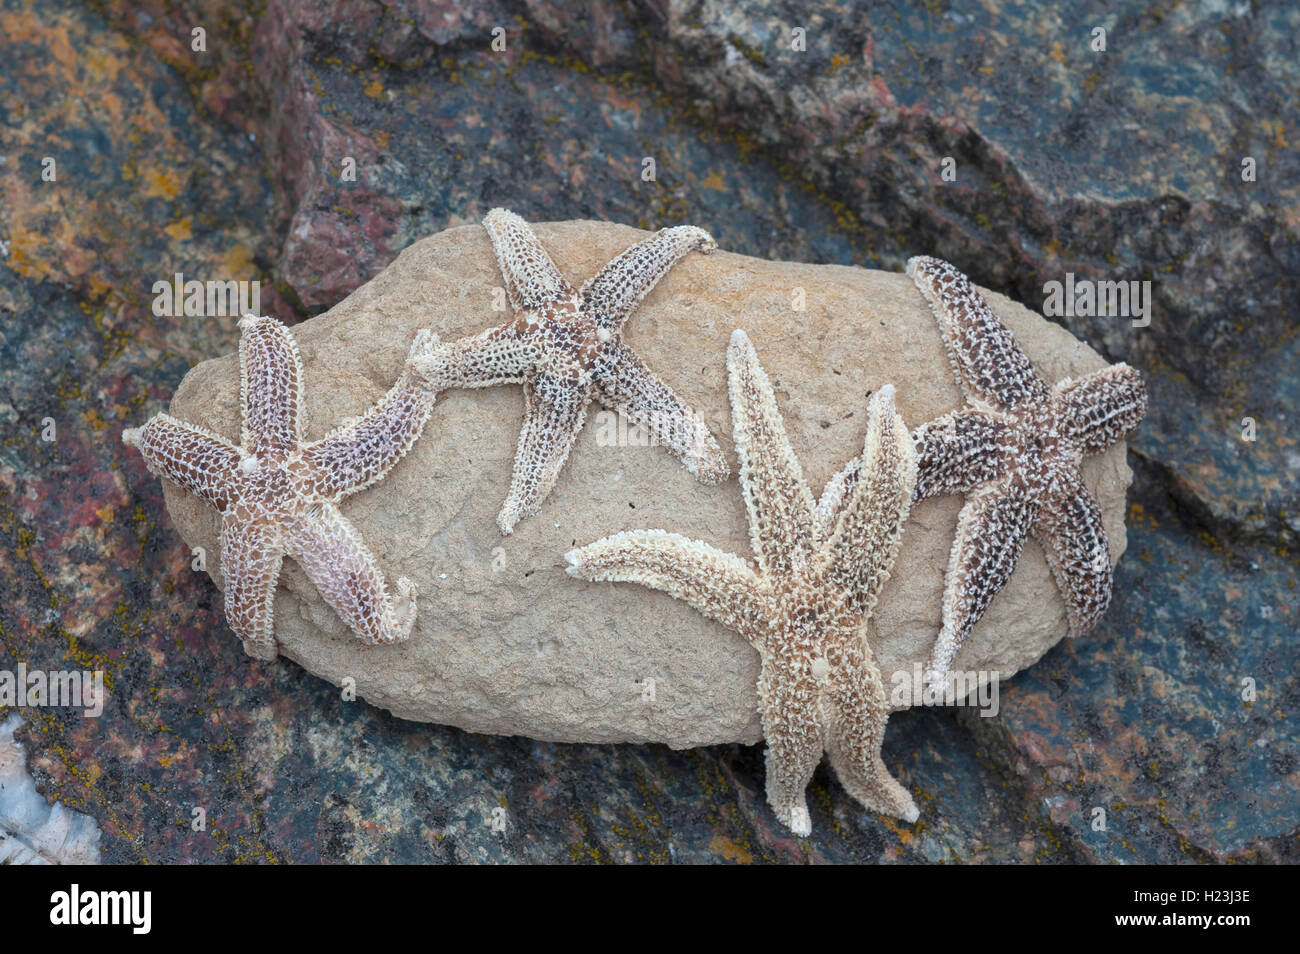 Starfish (Asteroidea) on a rock at low tide, Atlantic Coast, France - Stock Image